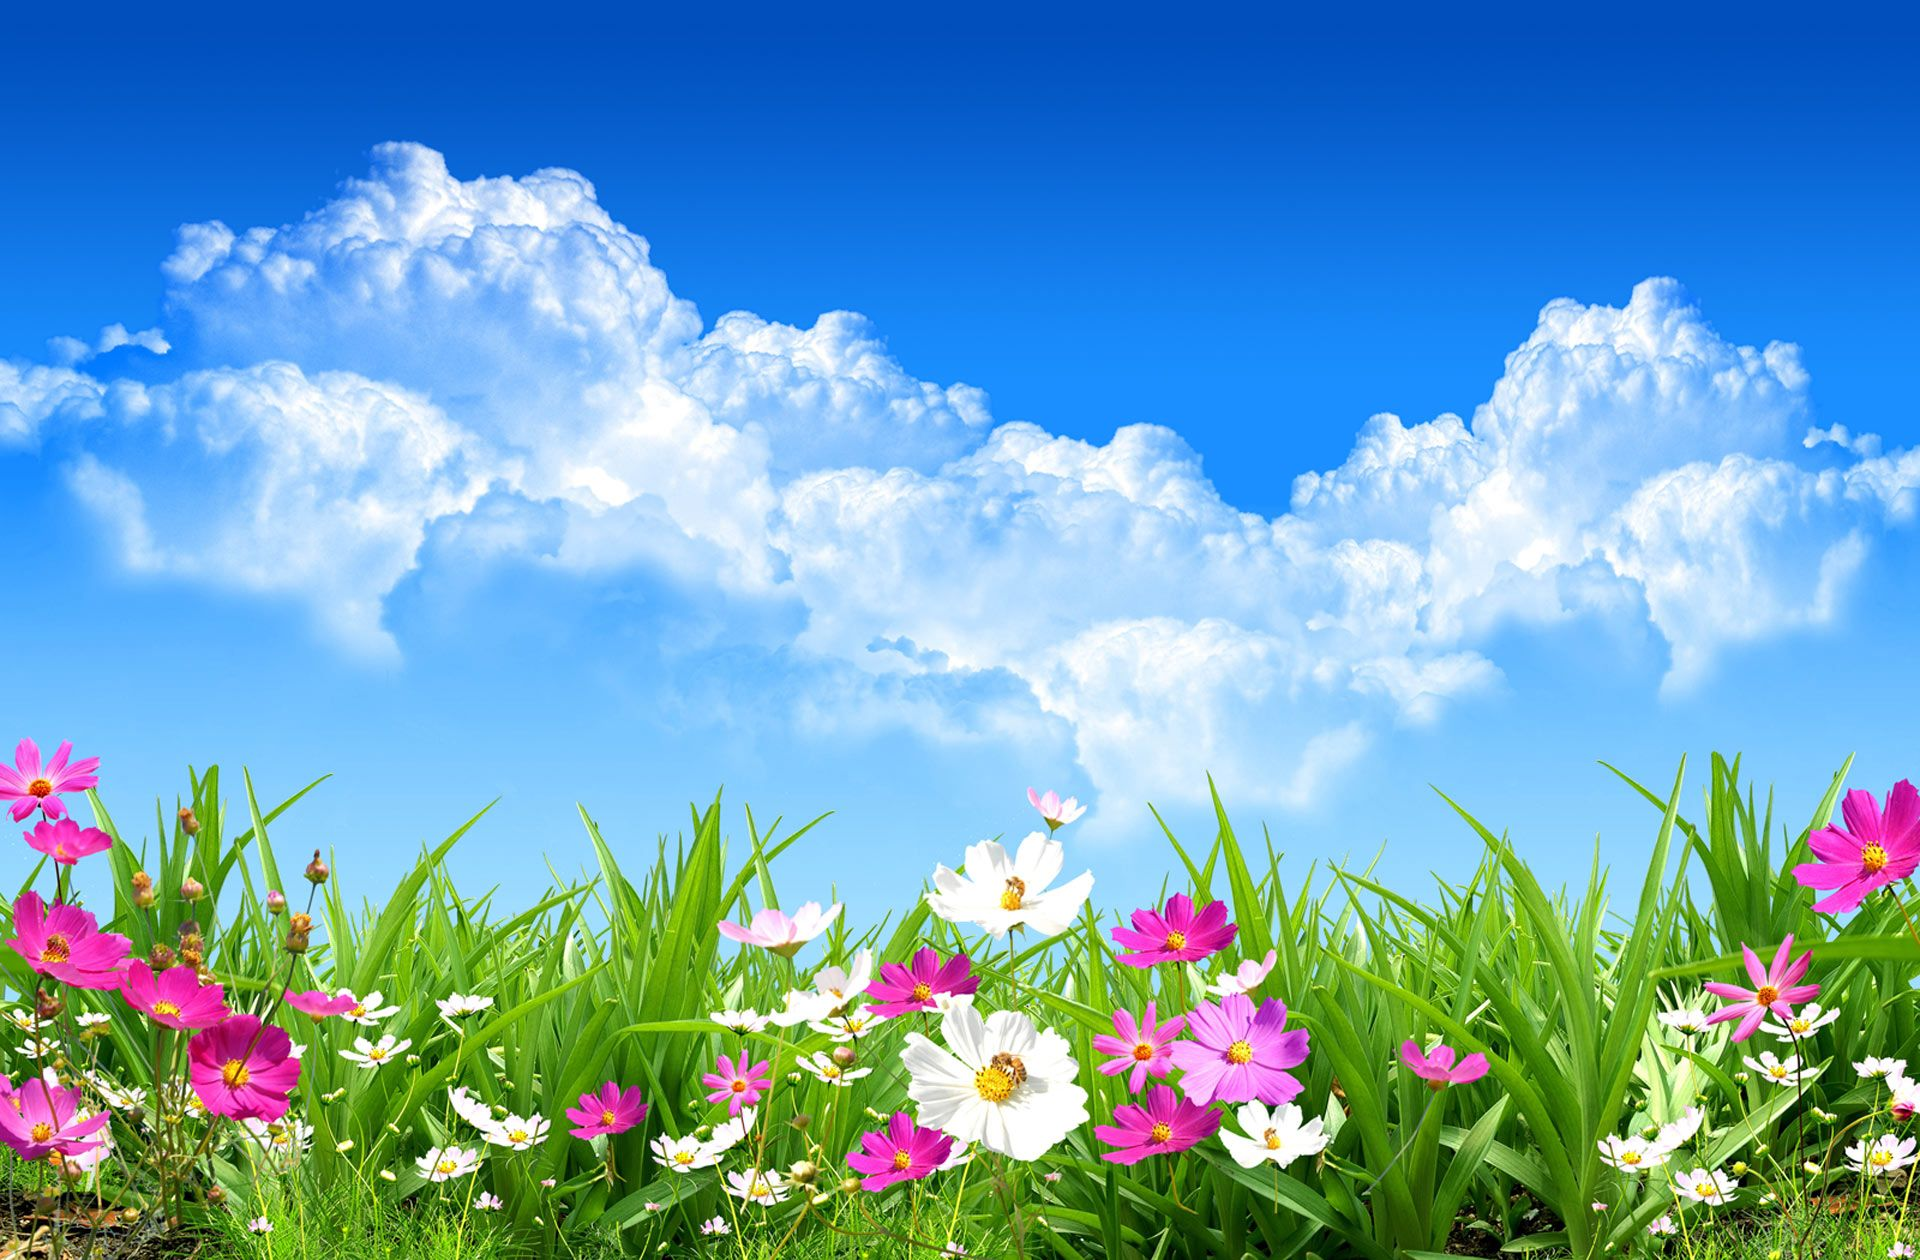 Messenger Plus Flowers With A Blue Sky With Images Spring